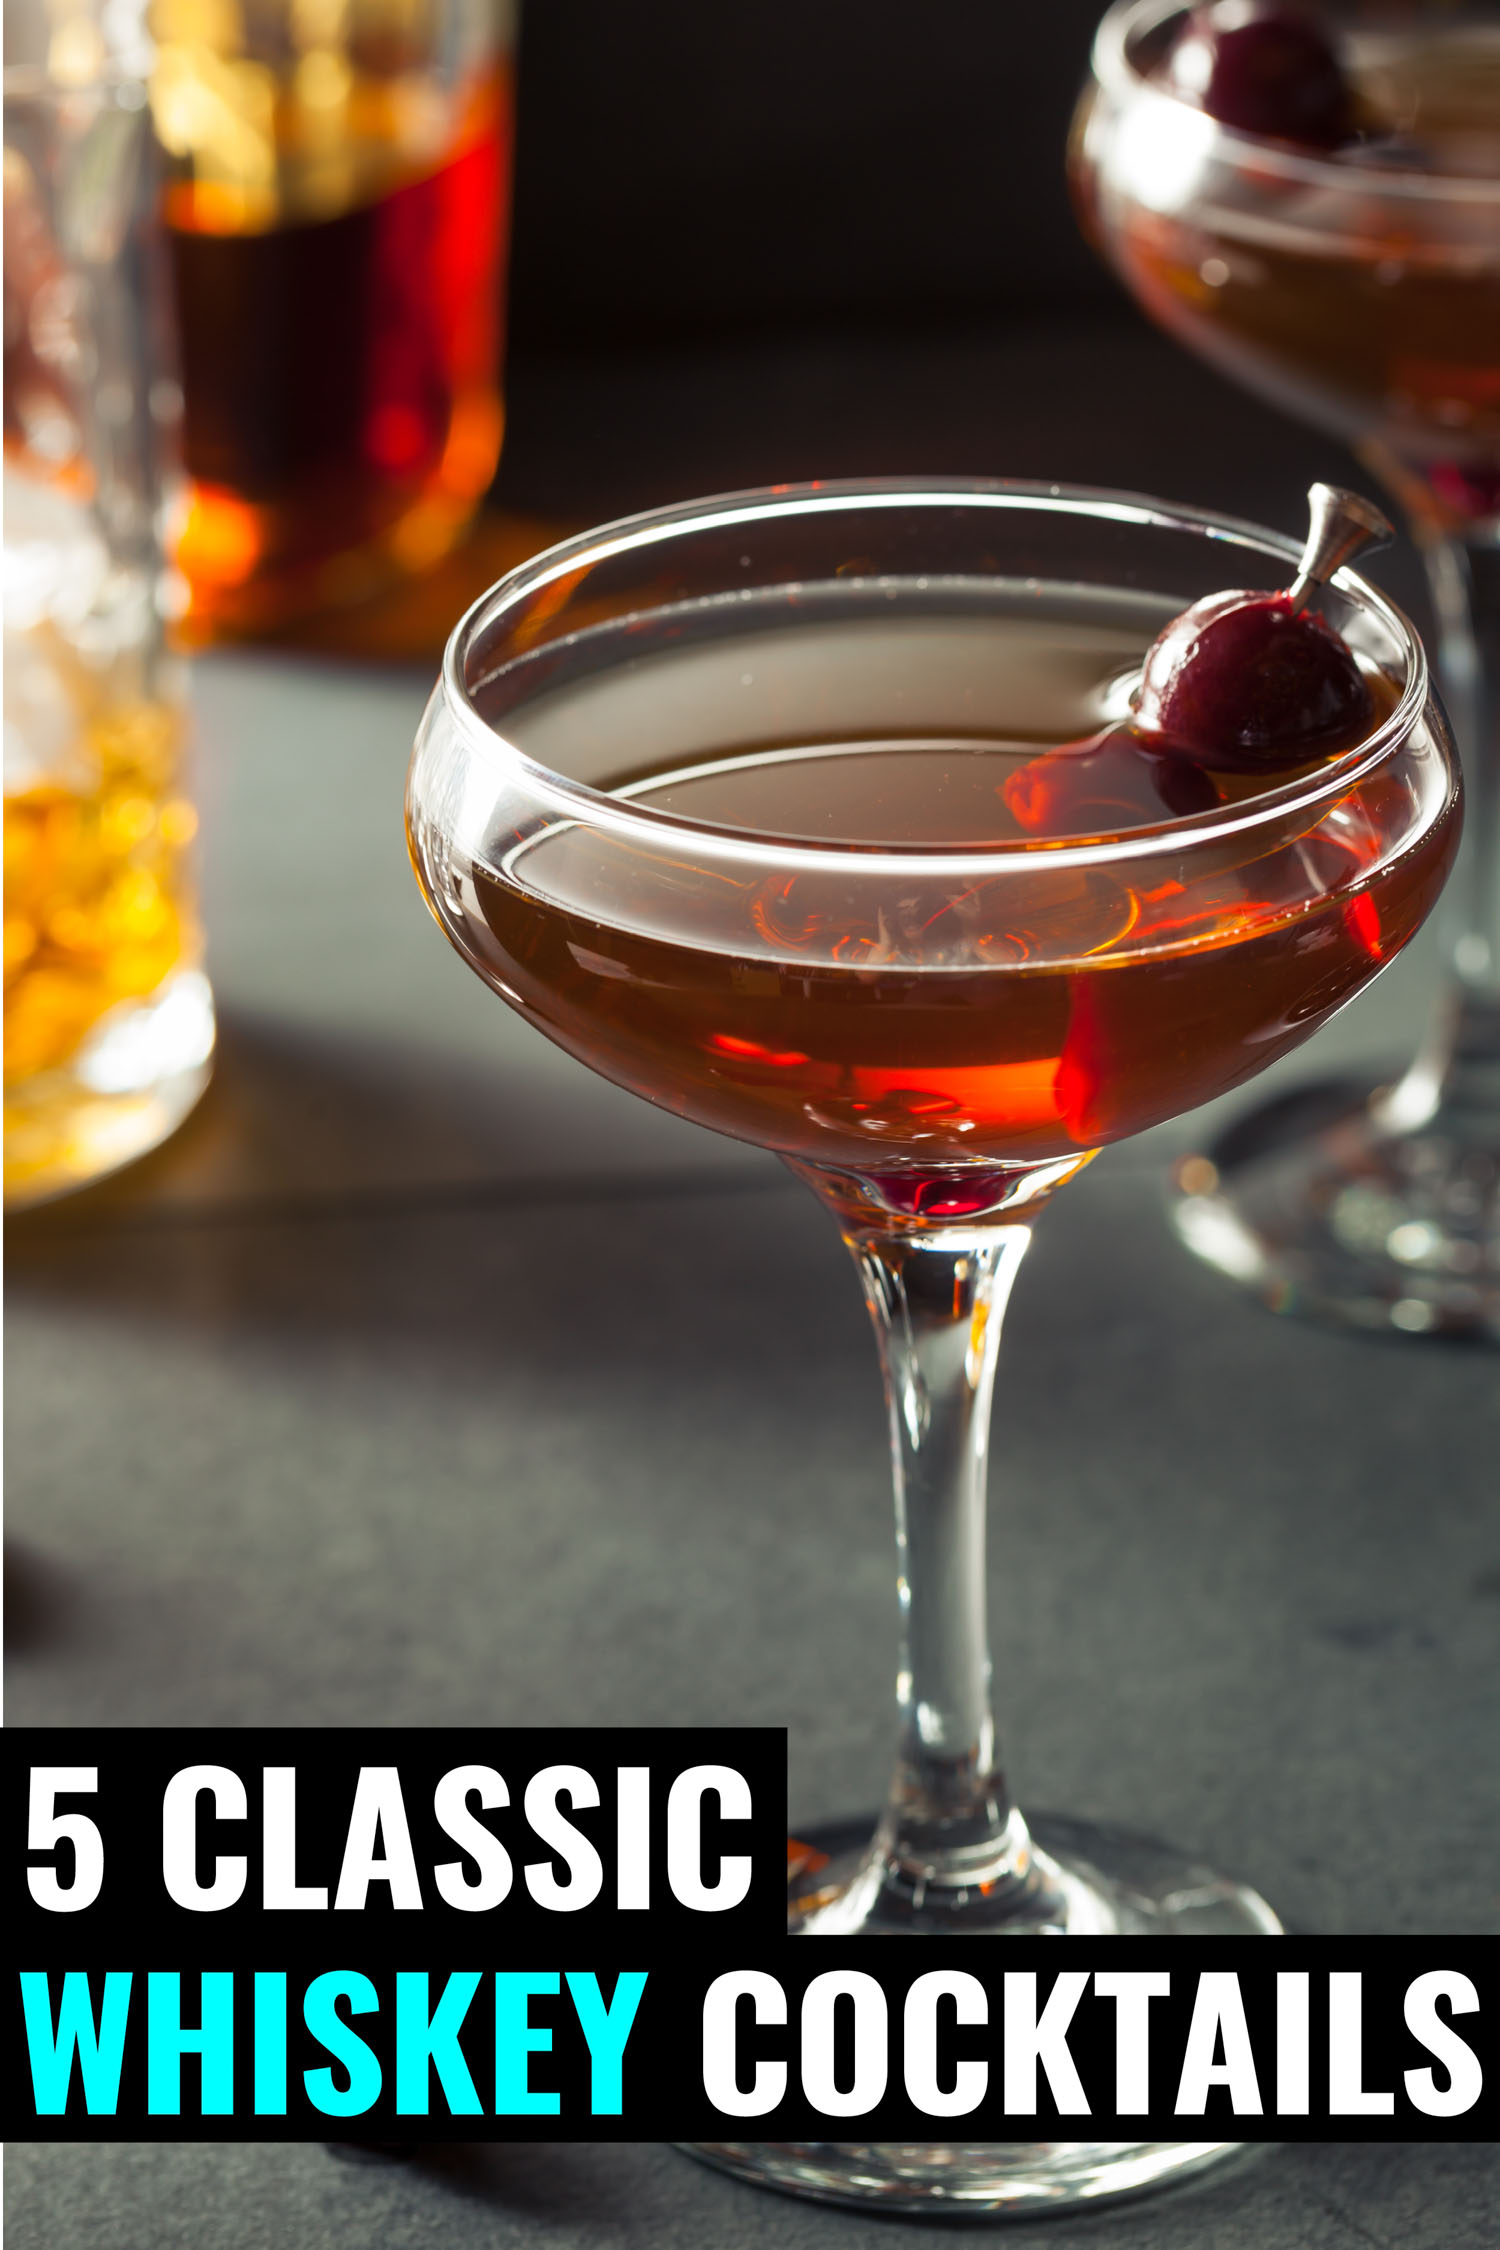 Classic whiskey cocktail